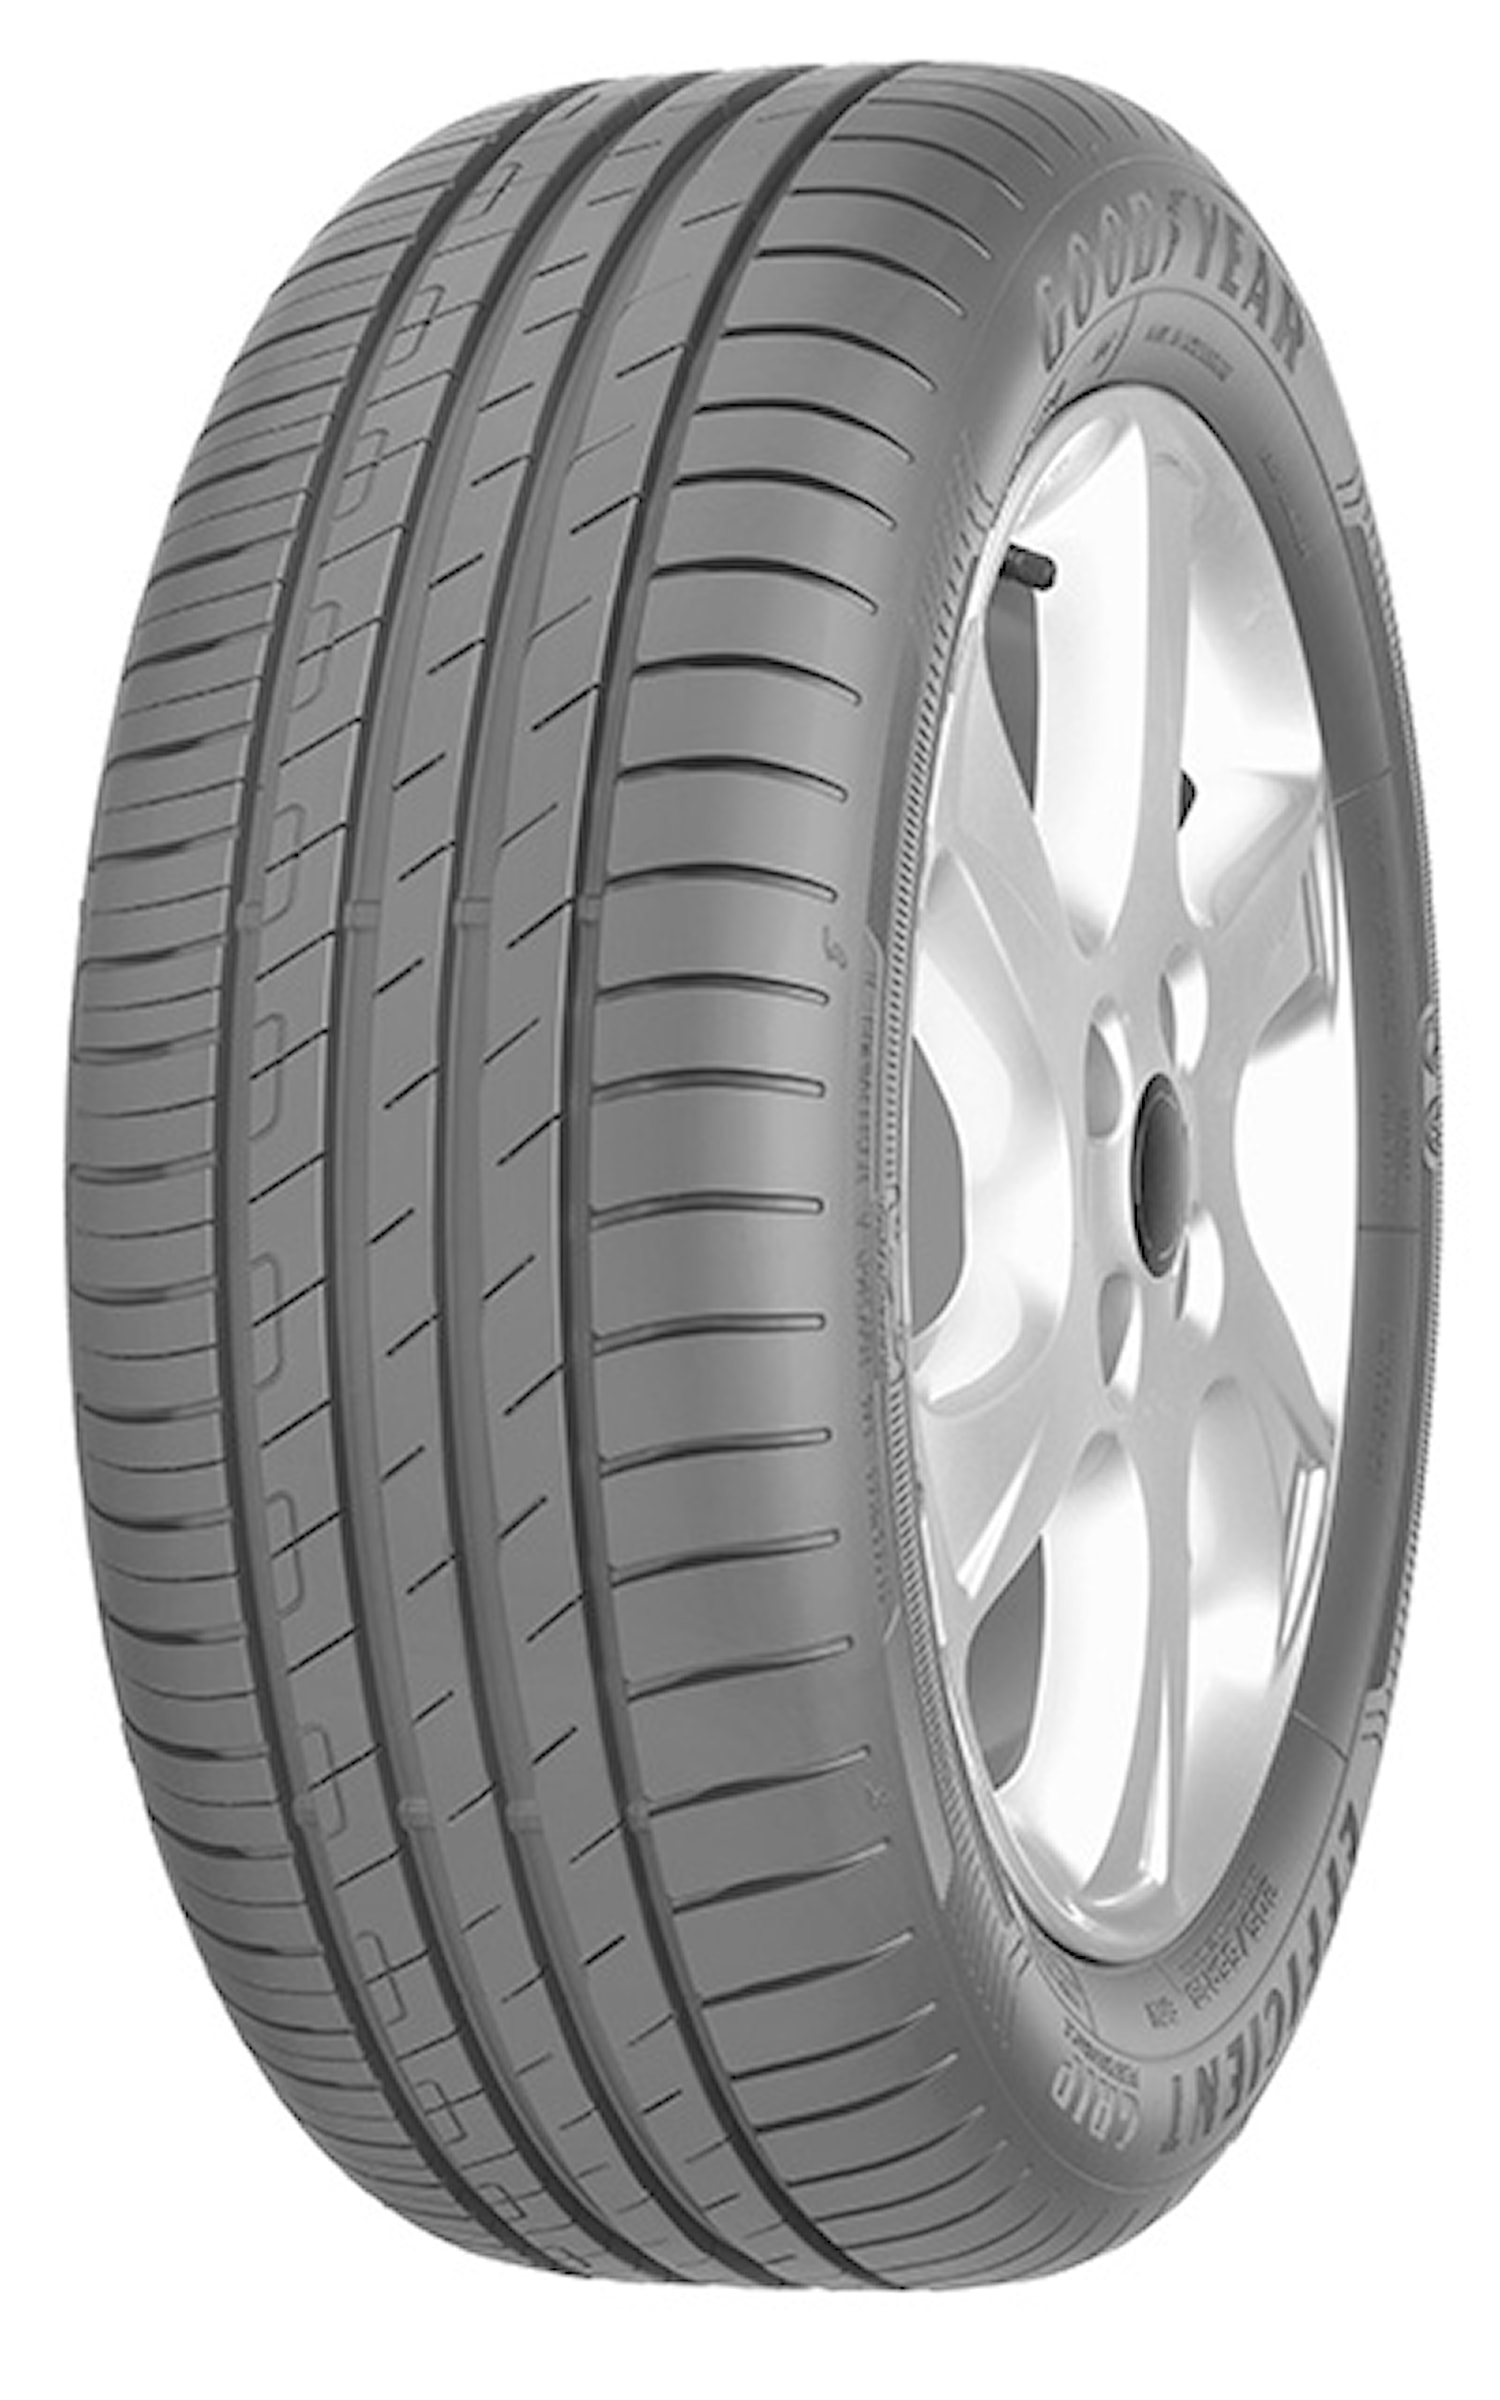 Goodyear Efficientgr.Perf. 92H